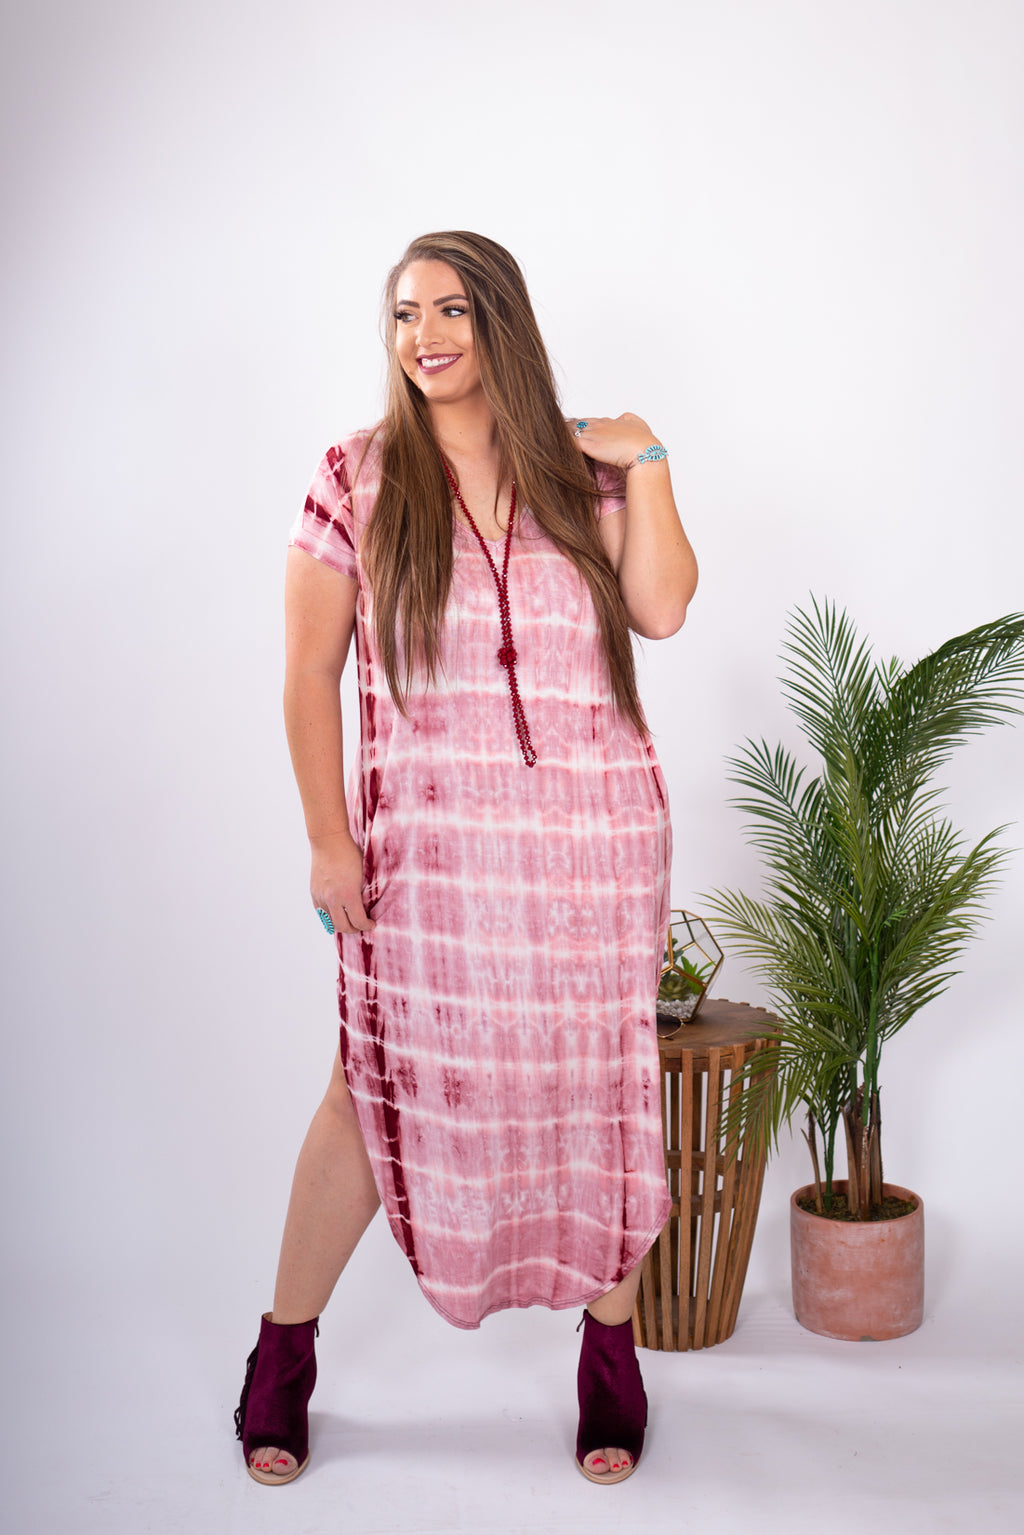 Wine Tie-Dye Maxi Dress with pockets. Side Slits on both sides with the Softest Fabric!